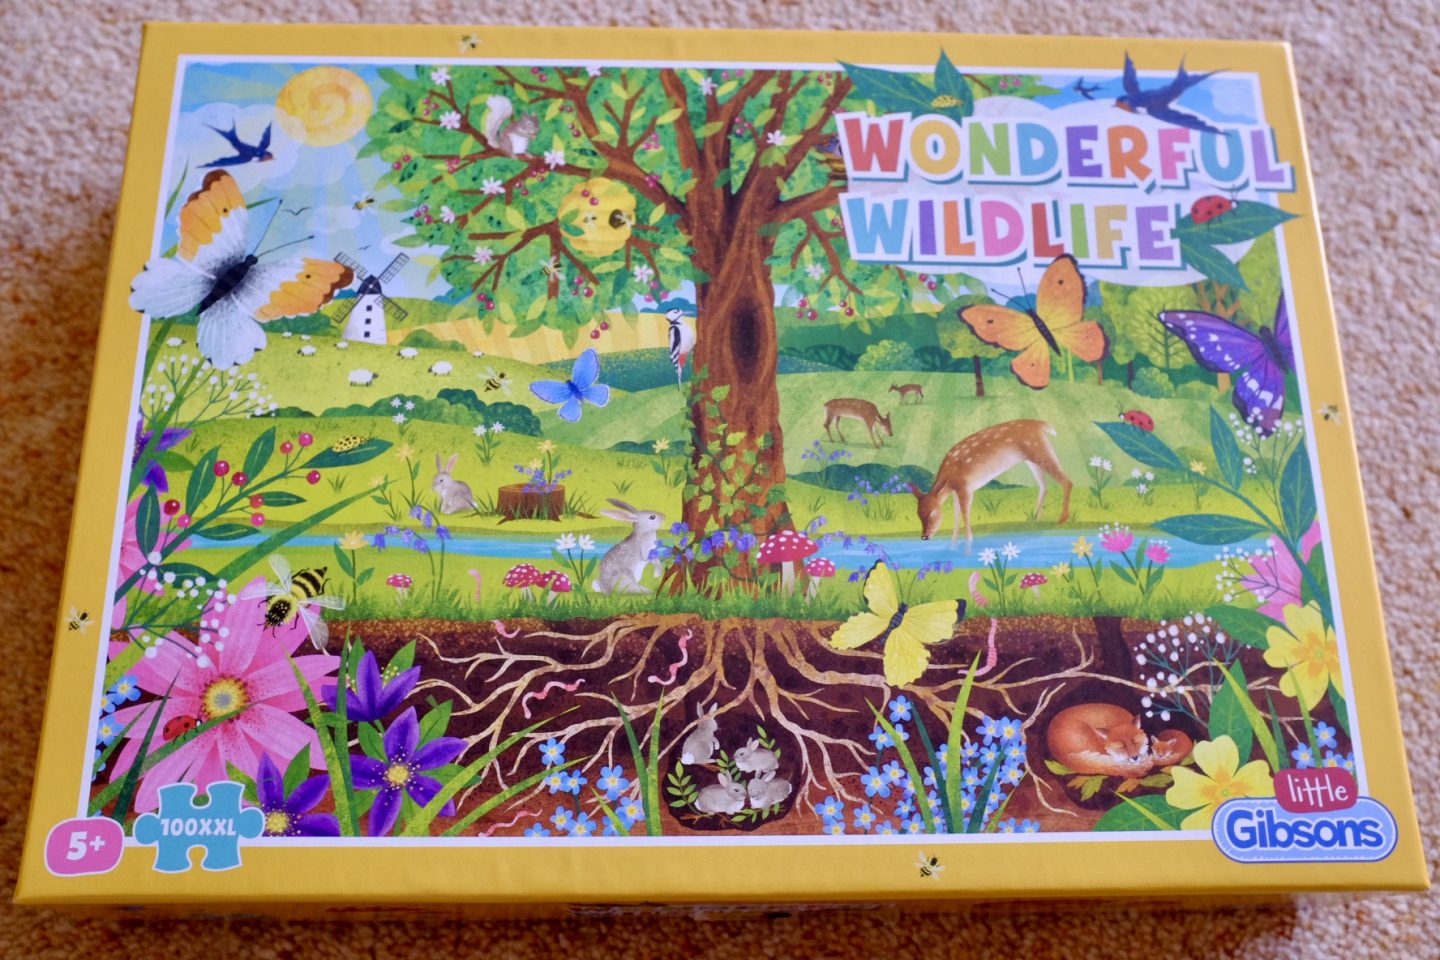 Wonderful Wildlife Jigsaw from Little Gibsons REVIEW and GIVEAWAY | AD